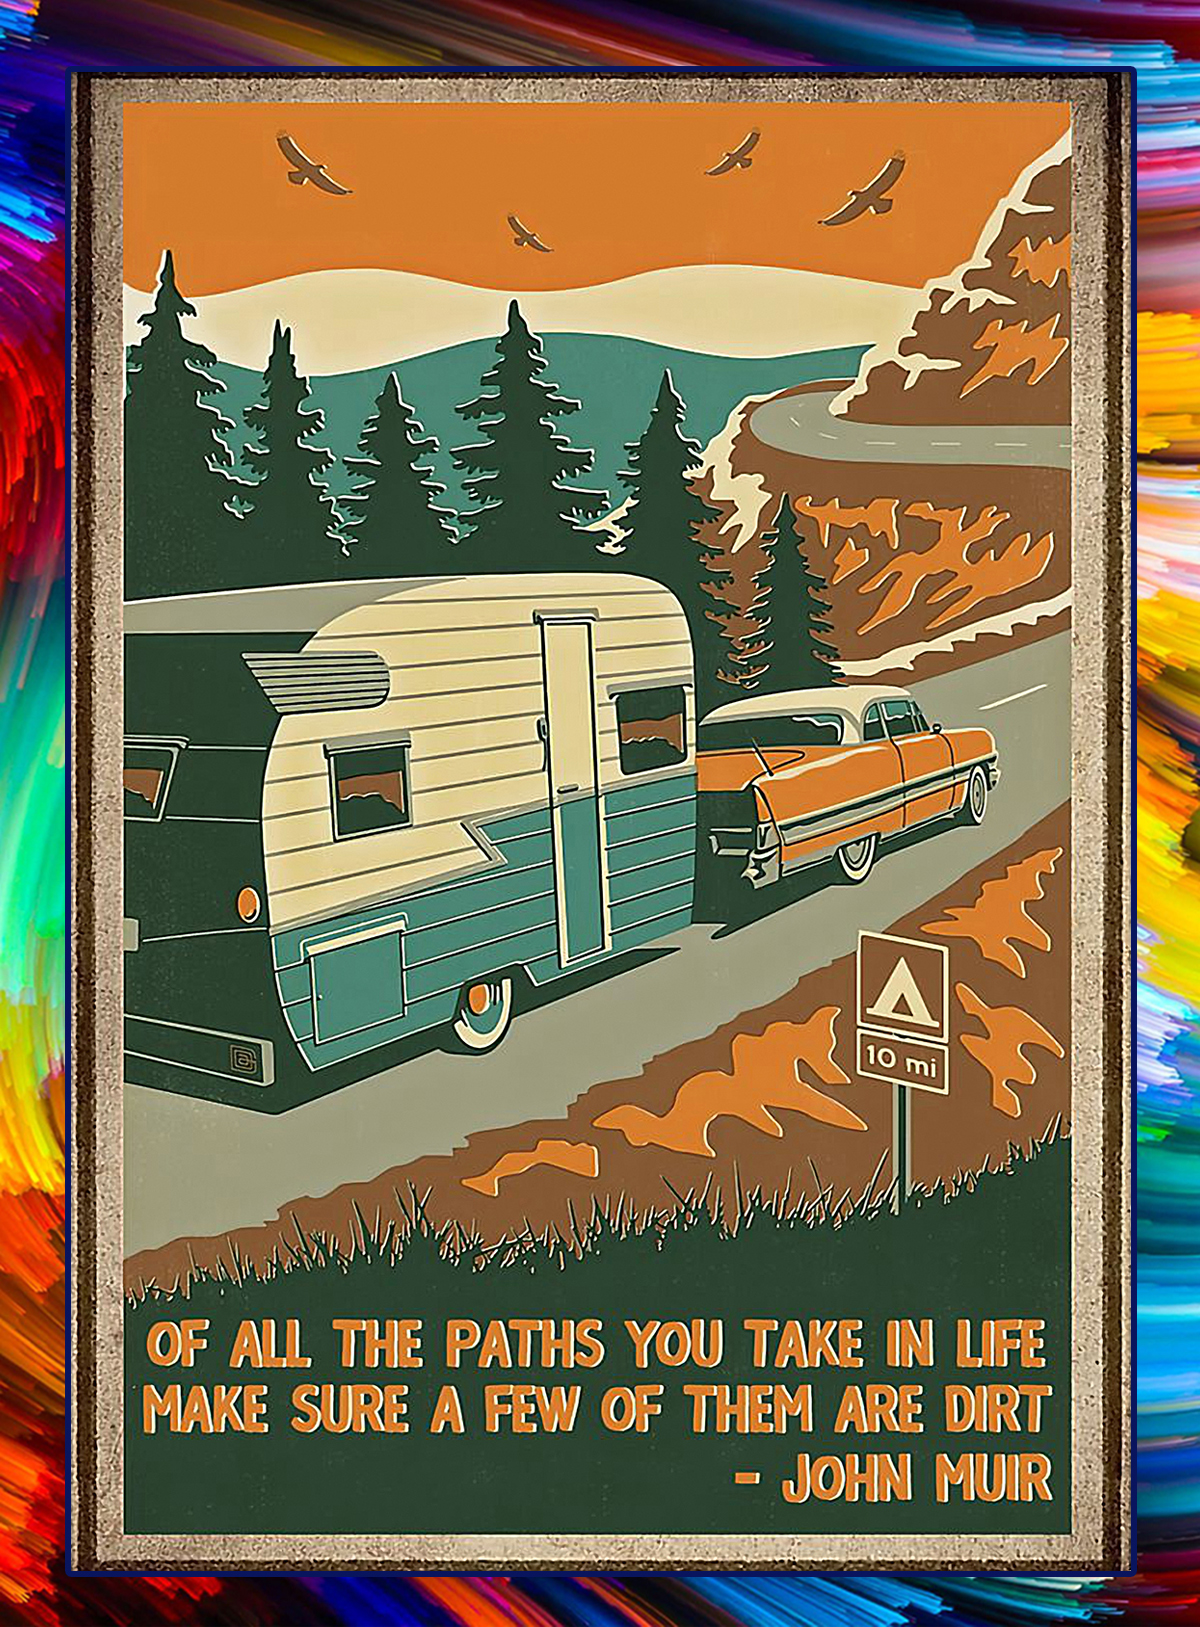 Of all the paths you take in life john muir poster - A4